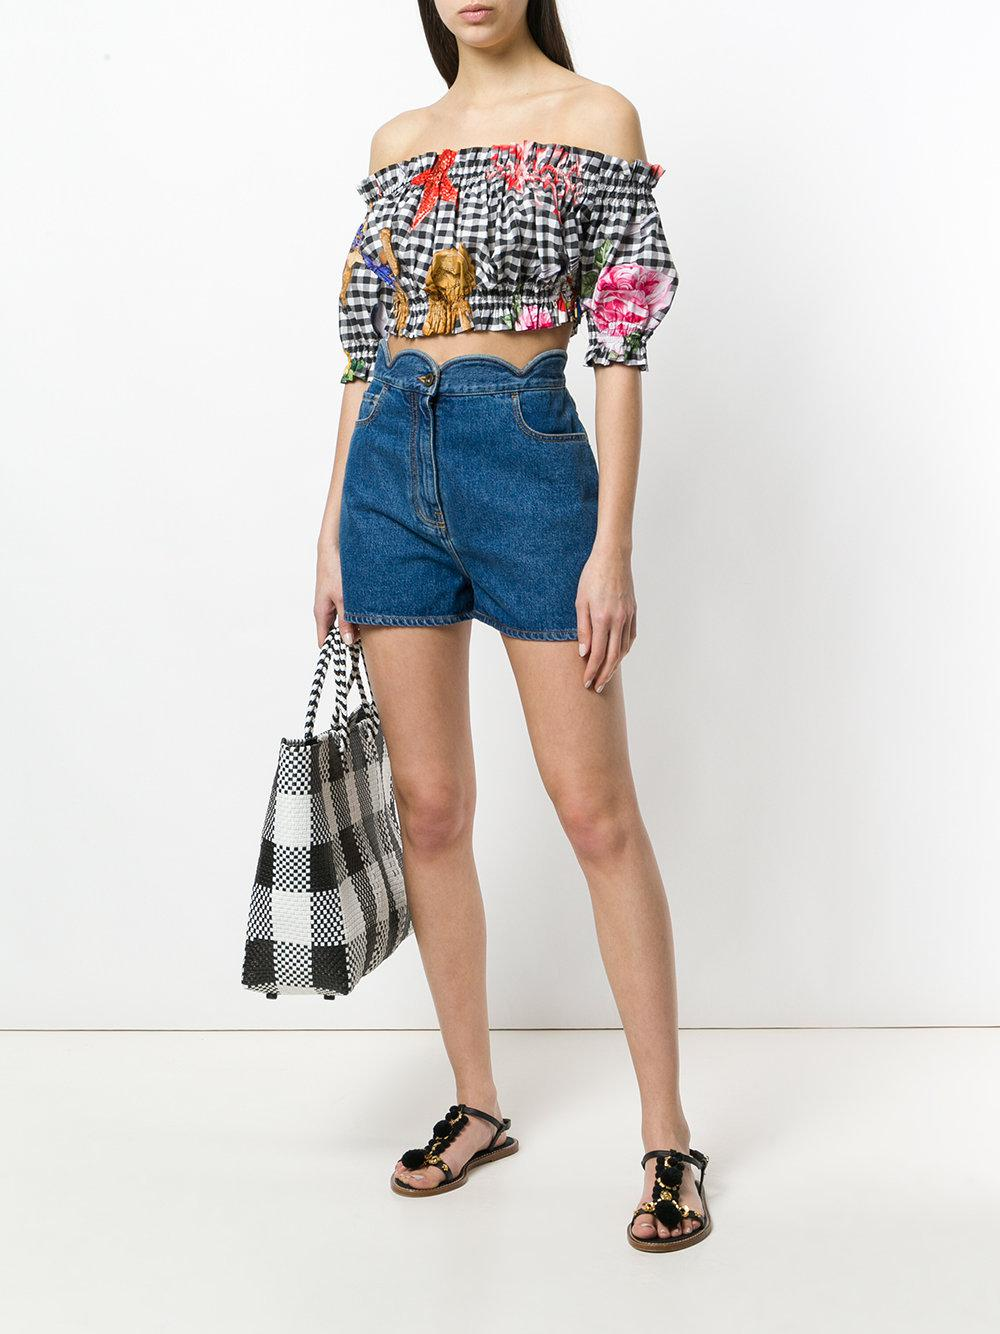 Dolce & Gabbana Gingham Check Printed Cropped Blouse in Black